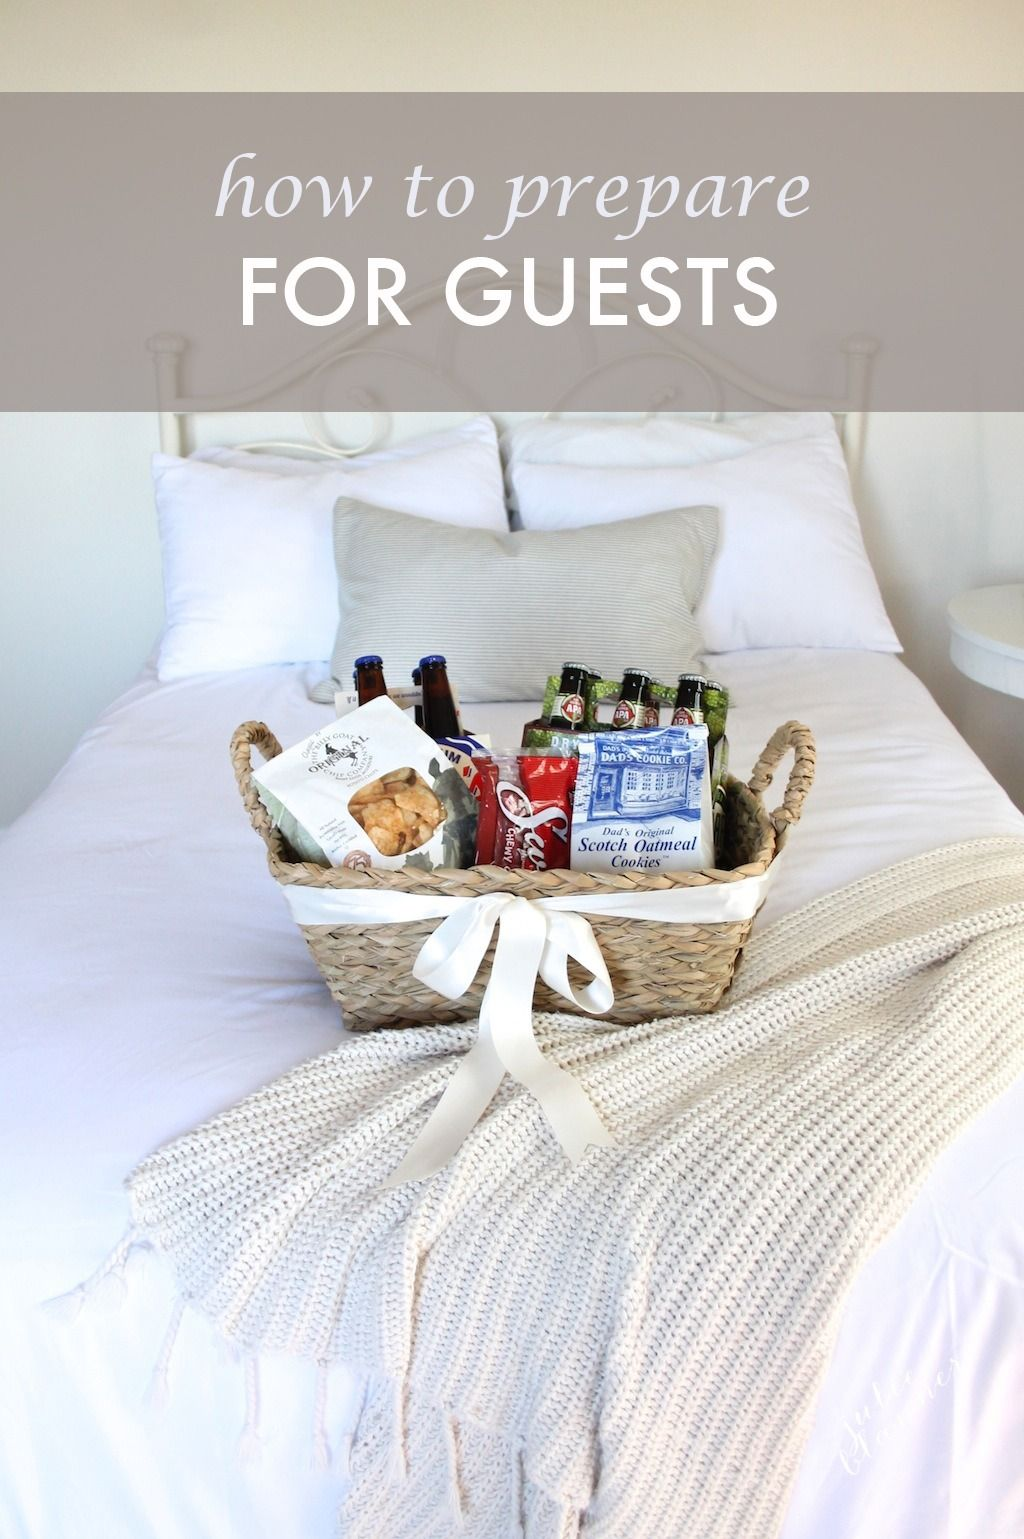 Welcome weekend or holiday guests with these warm and inviting ideas ...